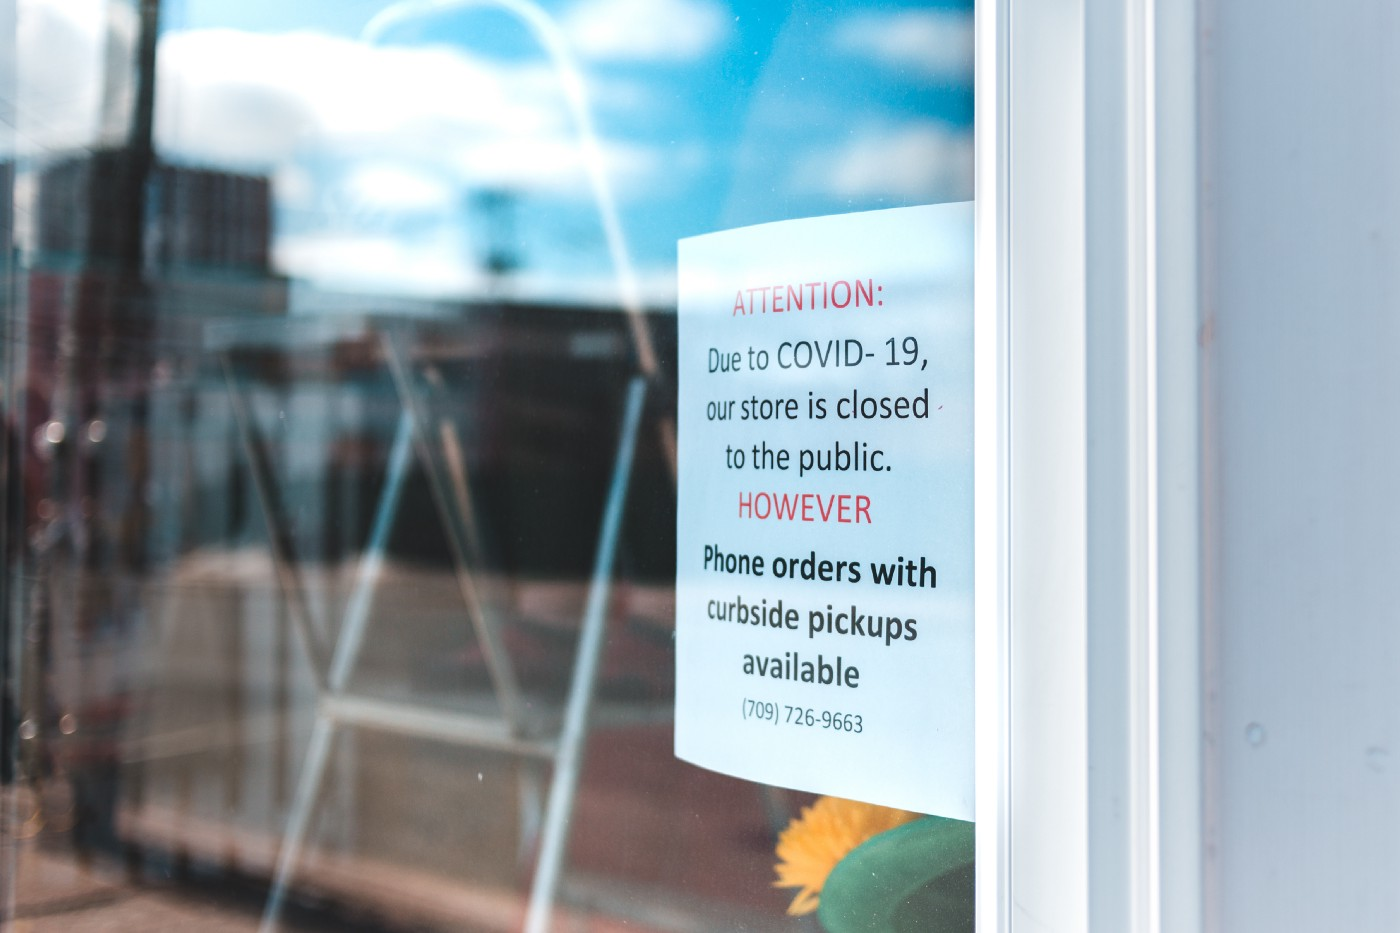 [Photo] Window with a sign announcing that due to COVID-10, they are closed to the public and offering curbside pickup.